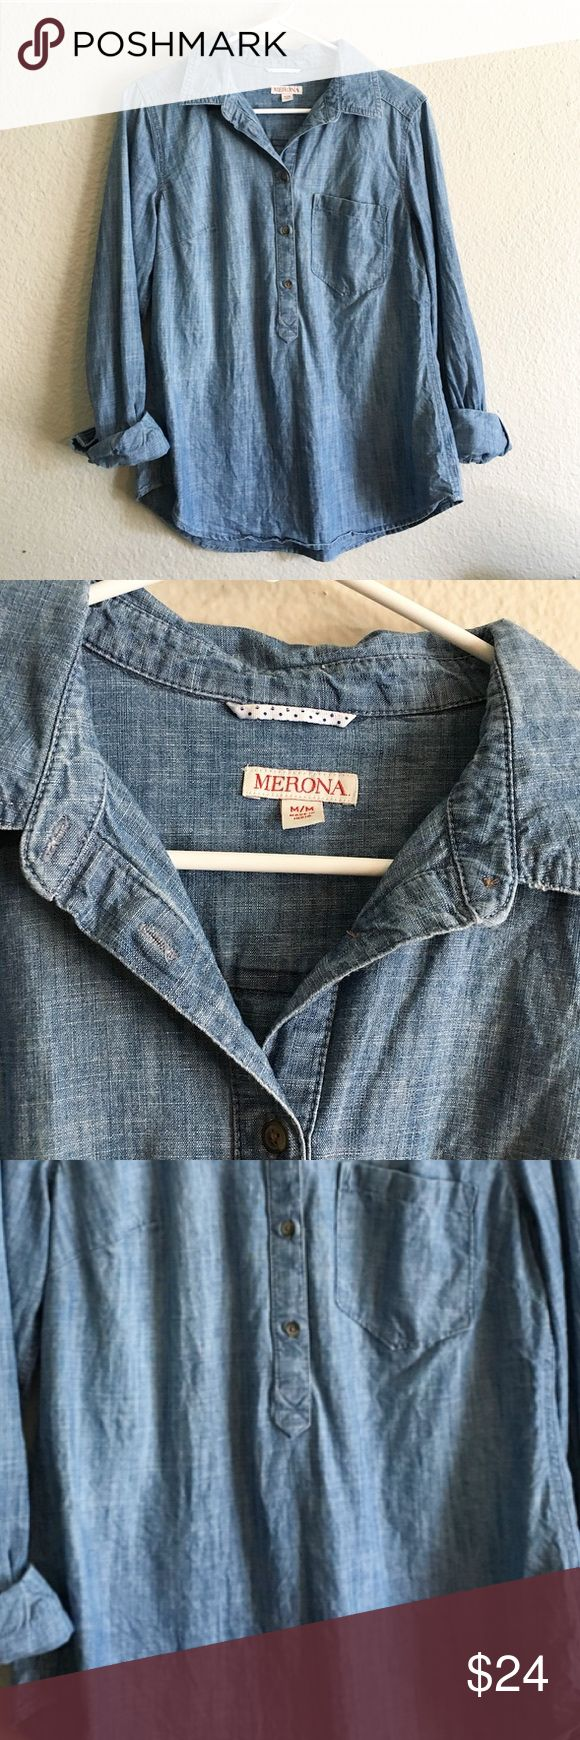 Denim Half Button Up Great denim button up. Great condition, only worn a few times. This denim is soft, and bottoms up half way. This can be casual or professional. Merona Tops Button Down Shirts